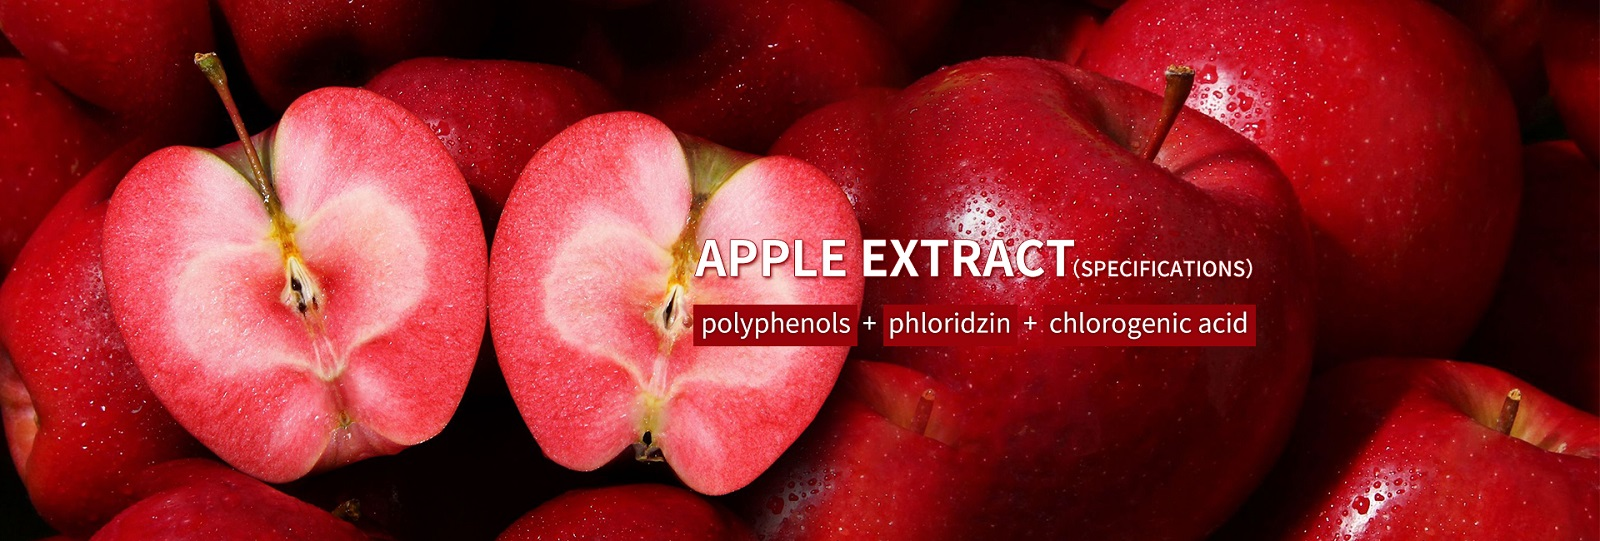 apple extact polyphenols red love extract phloridzin chlorogenic acid